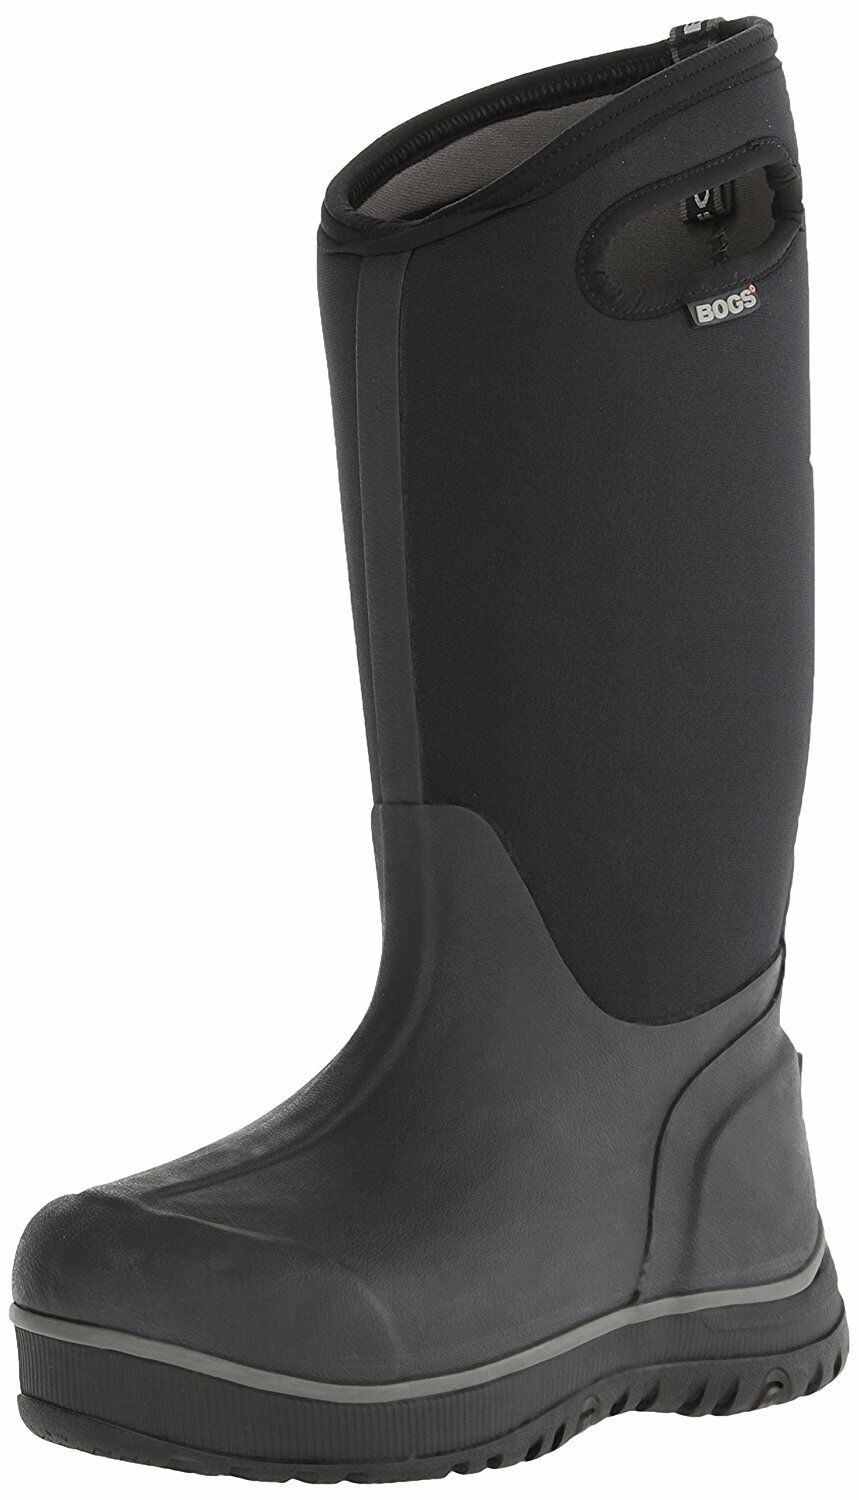 Bogs Womens Ultra High Waterproof Insulated Boot- Pick SZ color.